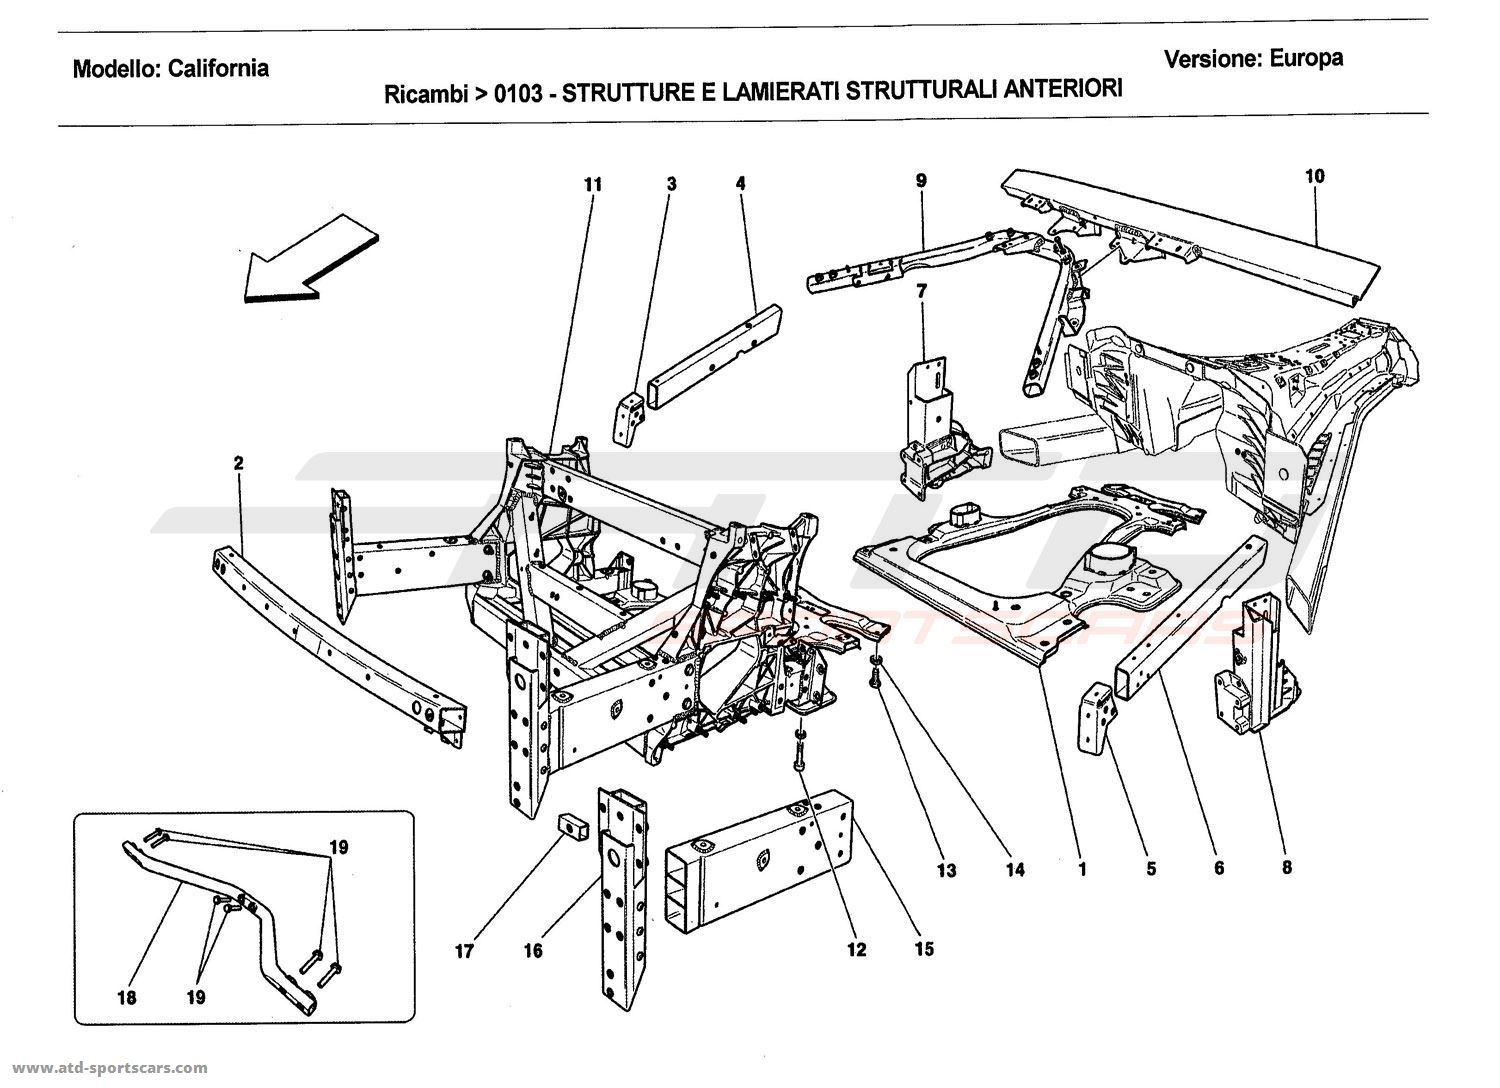 FRONT STRUCTURES AND CHASSIS BOX SECTIONS